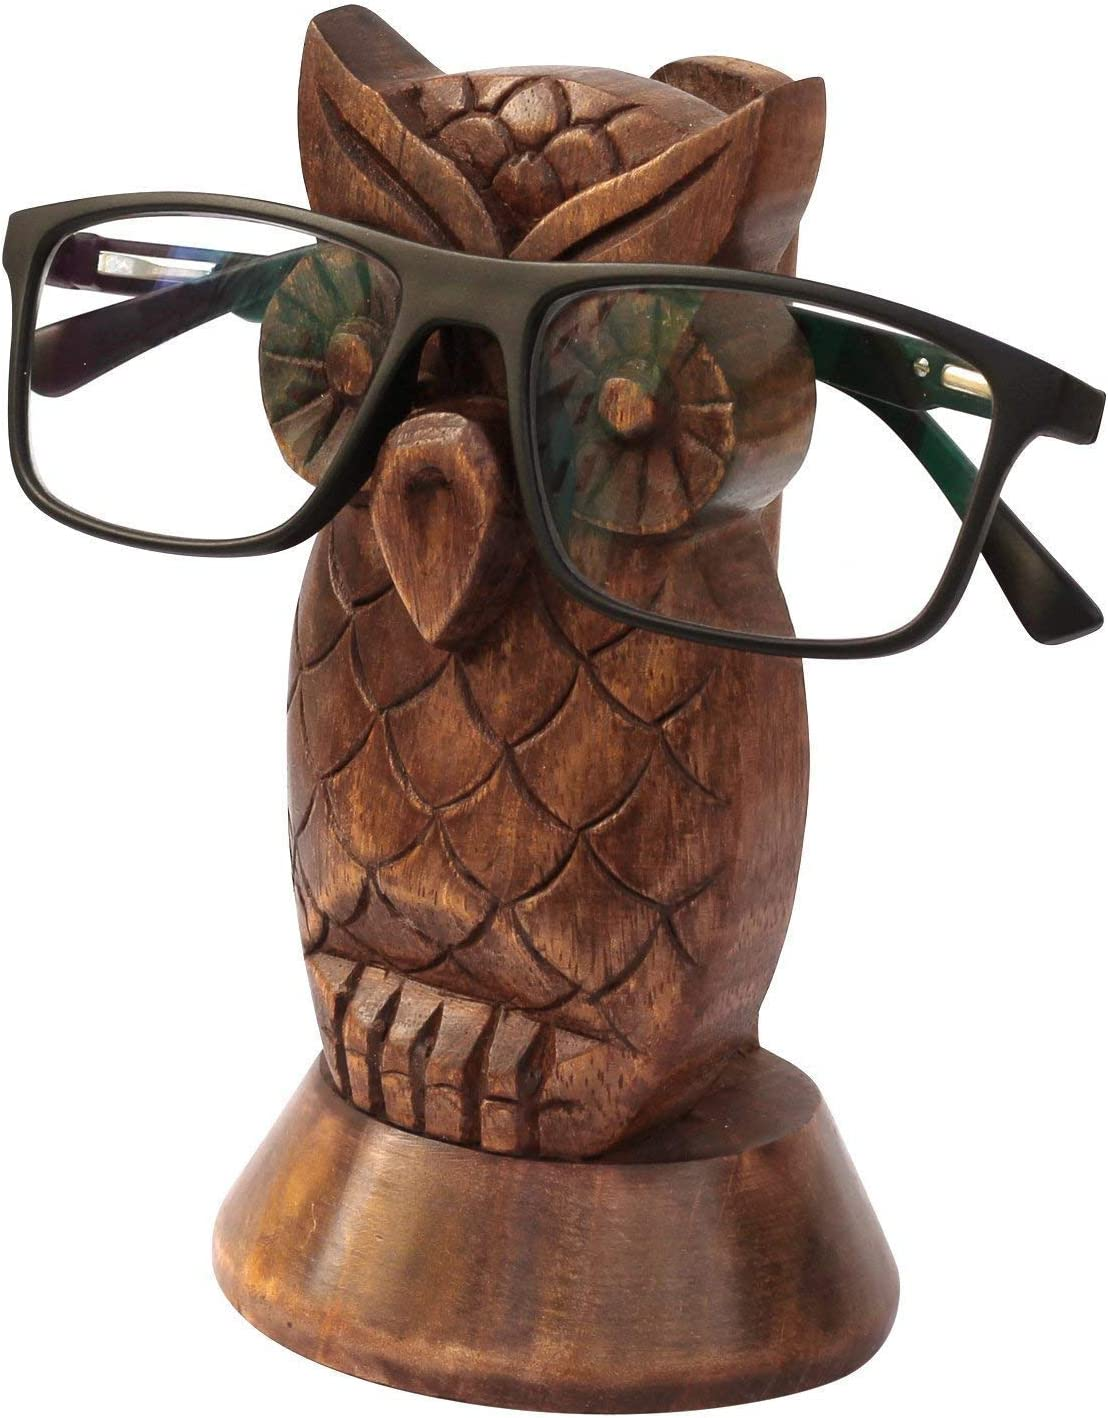 If your dad is a book lover, this eyeglasses holder is a cool gift for him. This handmade holder is designed in the shape of an owl that is so cute and elegant. Your father can put his glasses on it and save time looking at them when he wants to start reading books. Besides the function of holding glasses, it can be a good decoration to refresh your dad's bookshelf.